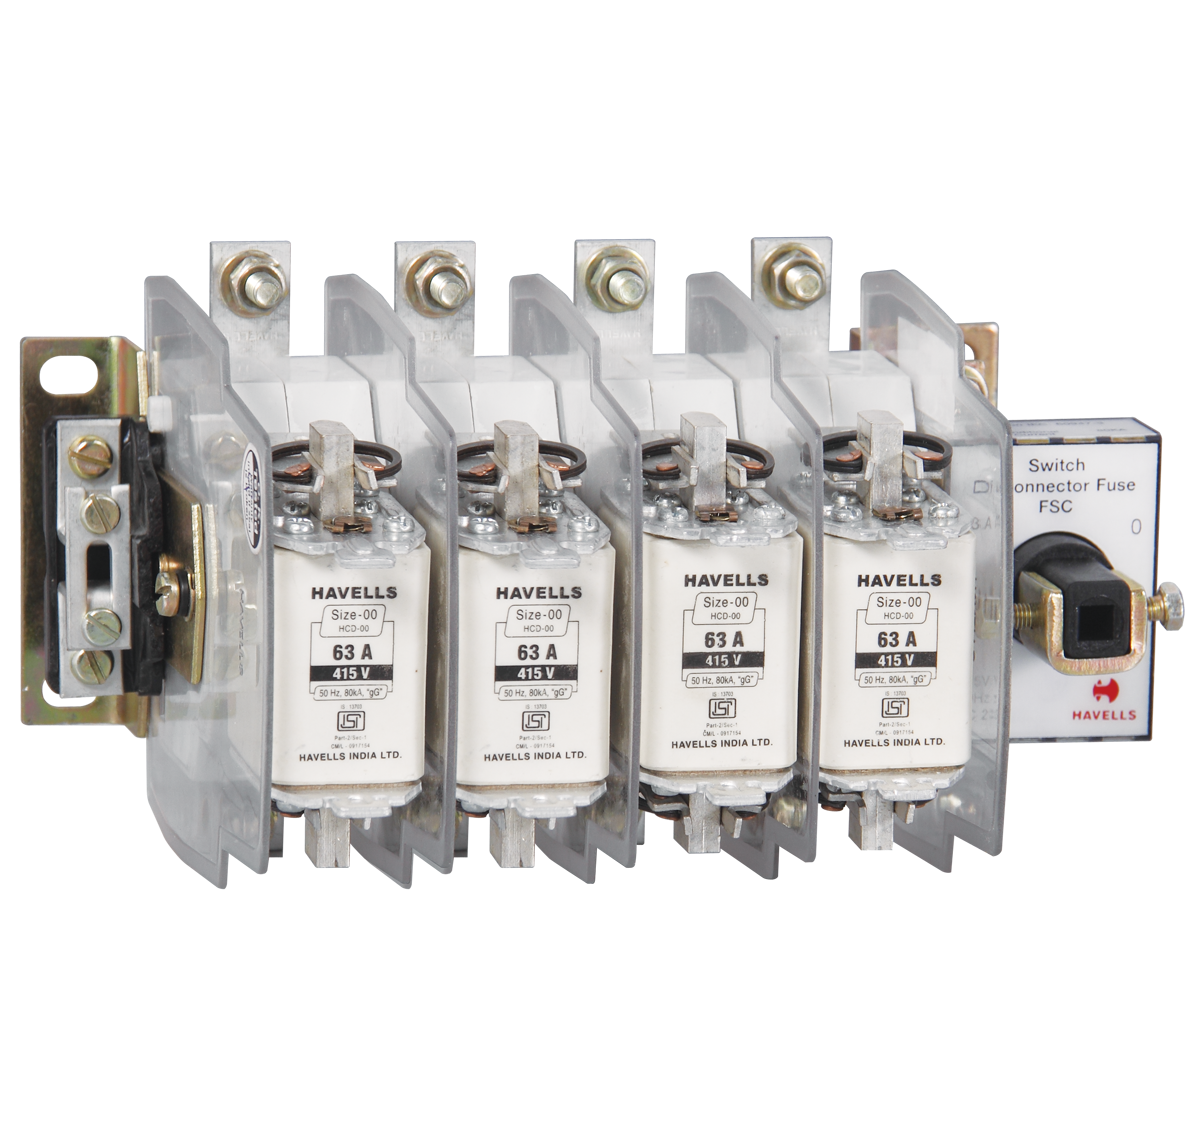 Kompact EZO Switch Disconnector Fuse Unit In Sheet Steel Enclosure with 4 Fuse 160 A - 800 A